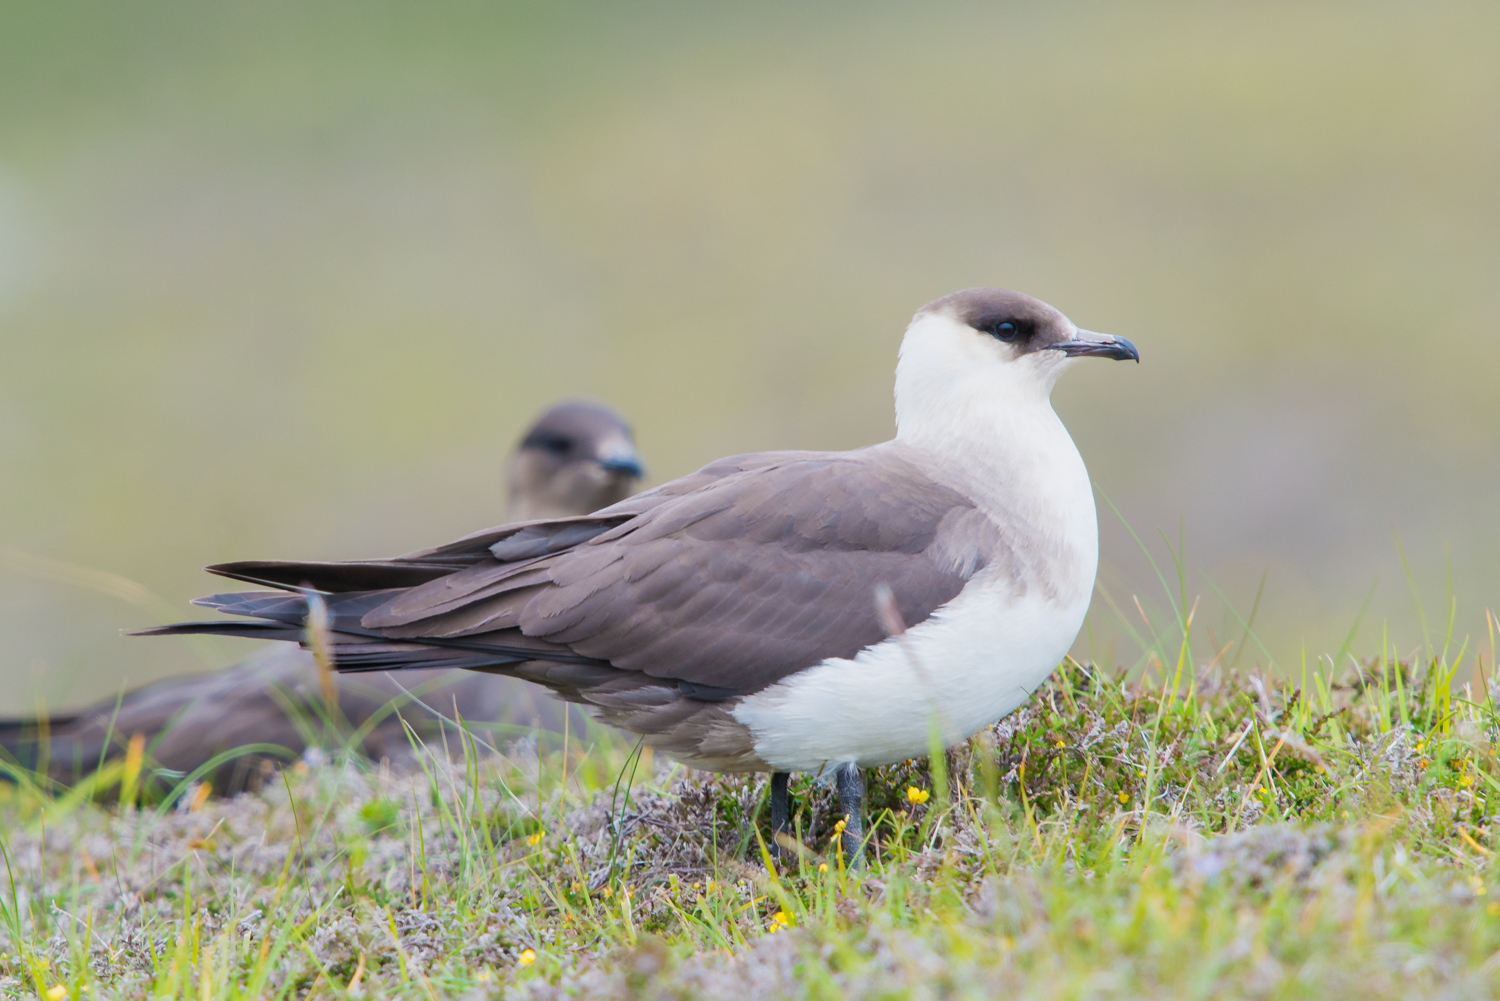 Arctic Skua, British birds, Fair Isle, UK